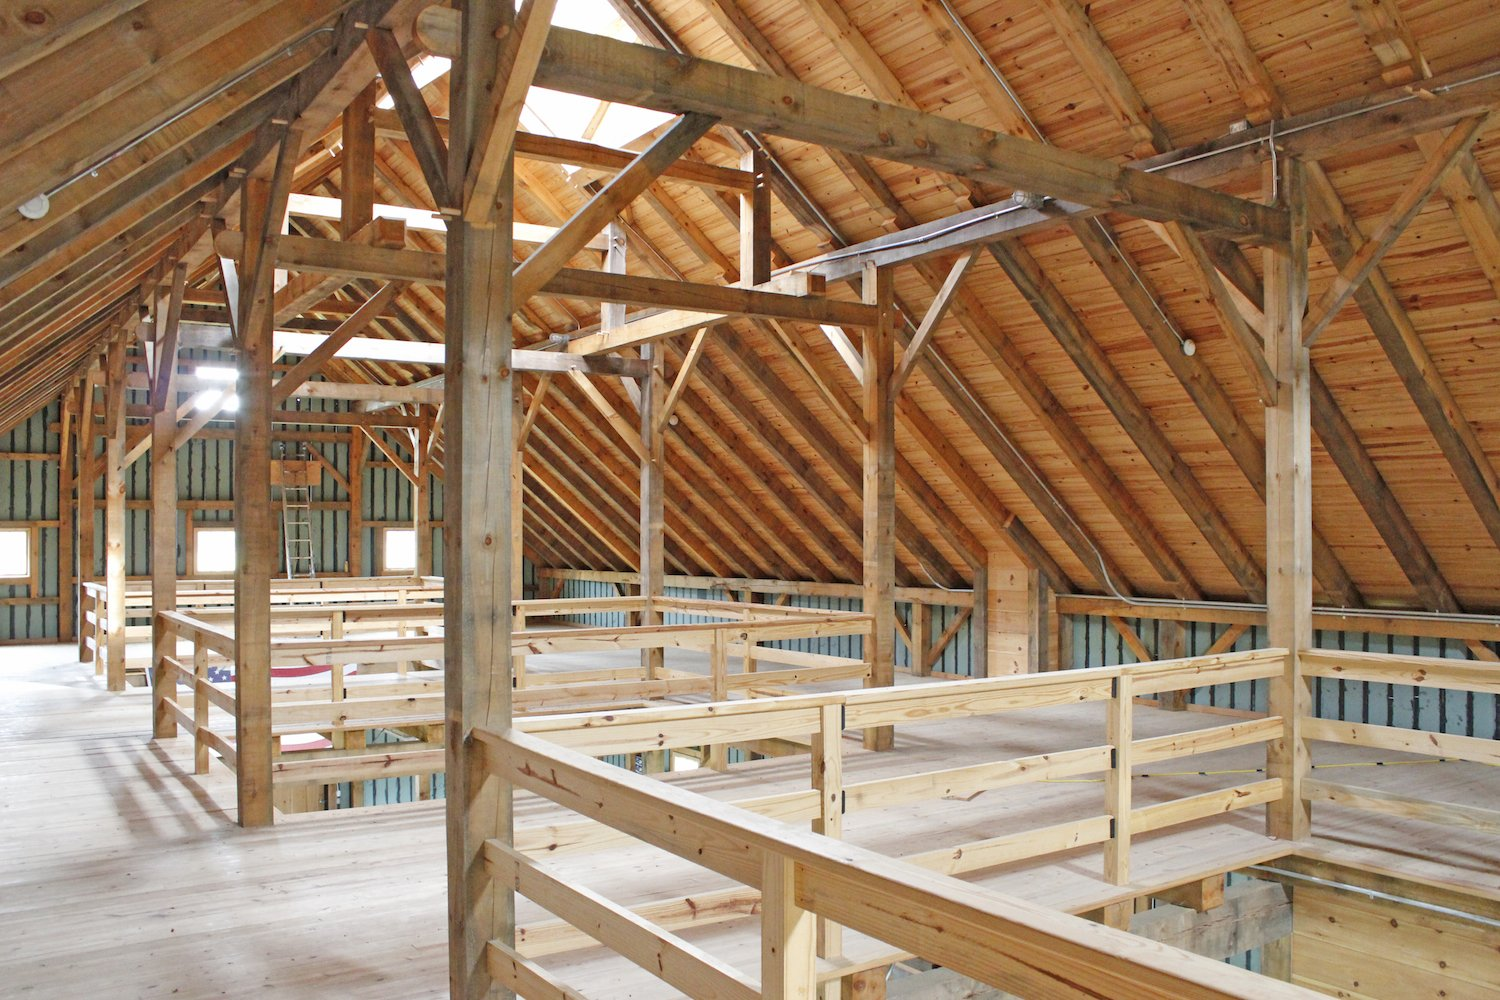 New England Barn Company adheres to the old-fashioned ethic embodied in the sturdy, long lasting construction method of Mortise and Tenon Joinery- using pegs rather than nails.